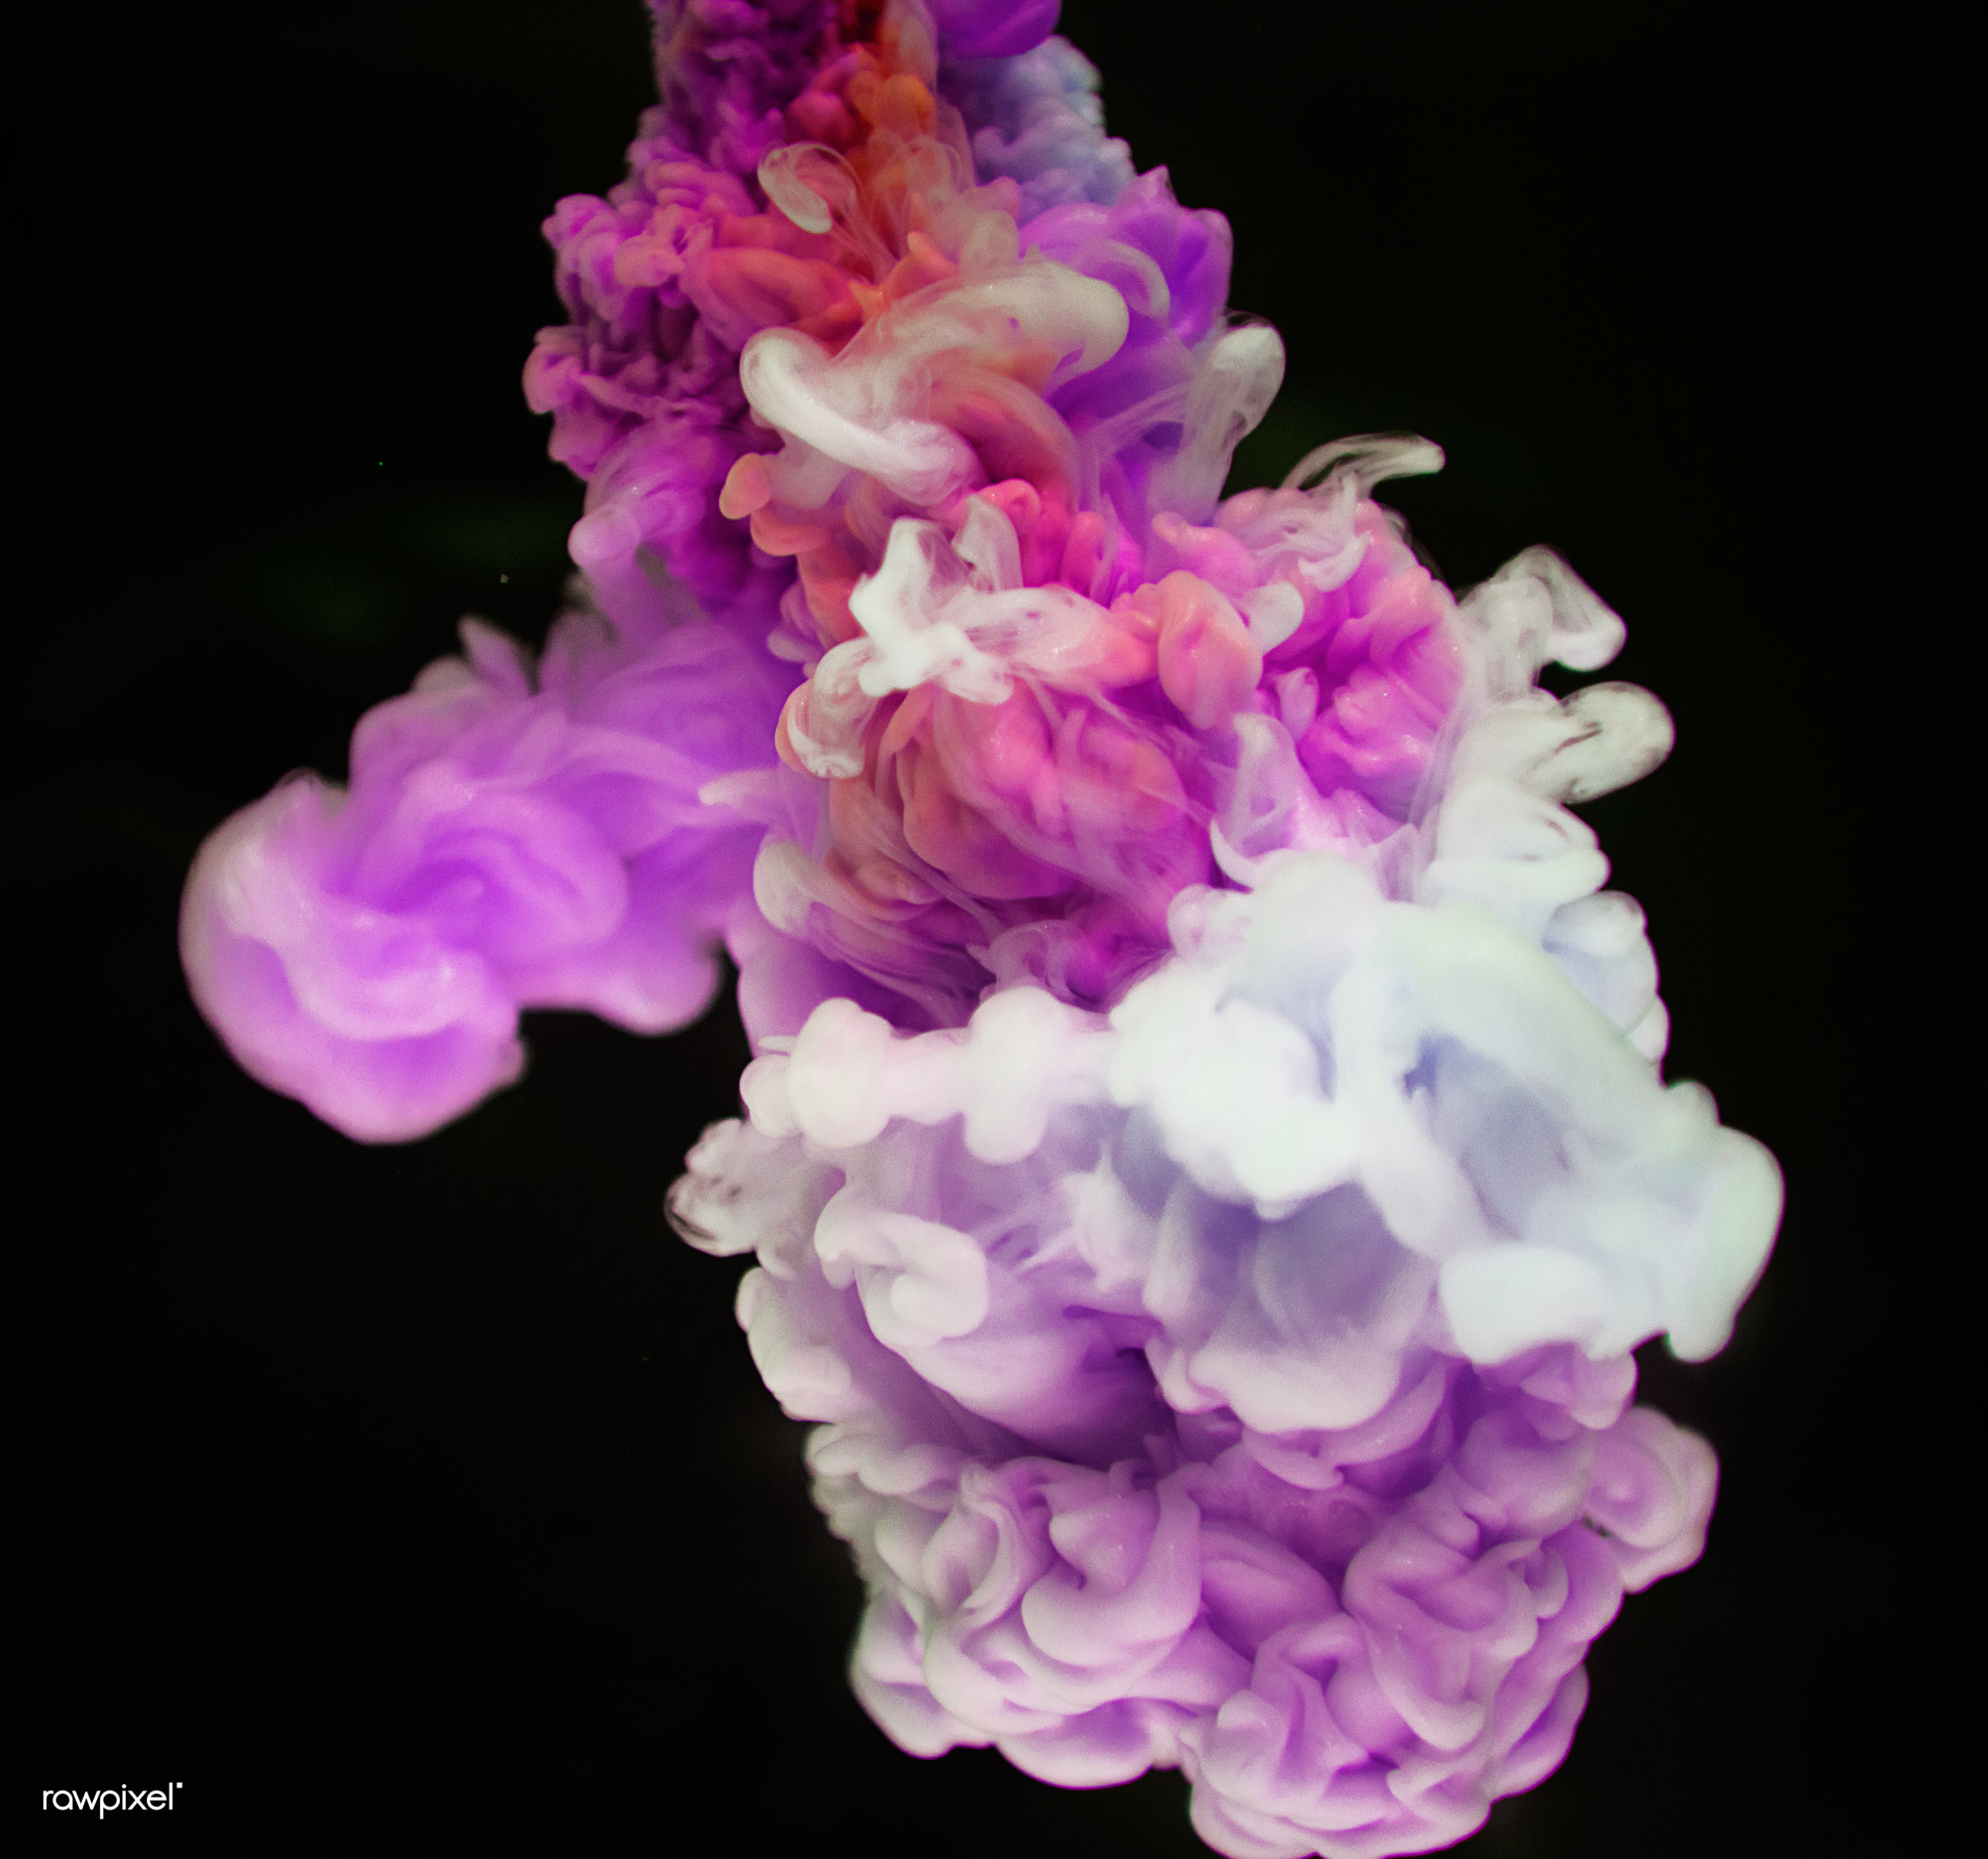 147322 download wallpaper Abstract, Colorful Smoke, Multicolored Smoke, Clots, Purple, Violet, Smoke screensavers and pictures for free